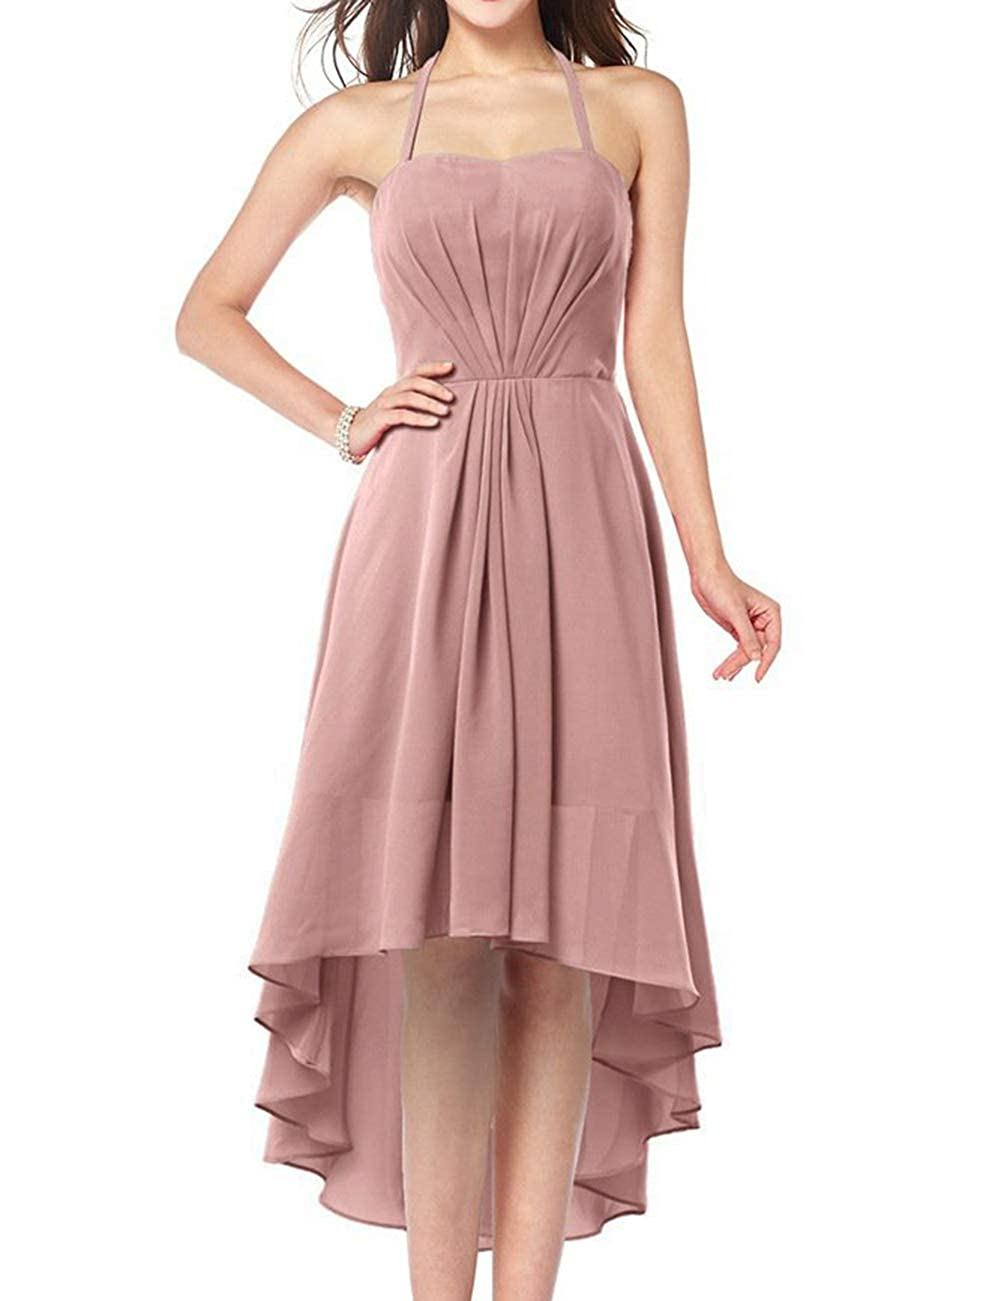 bluesh Uther Plus Size Bridesmaid Dresses Long Aline Halter Hi Lo Evening Prom Party Gown